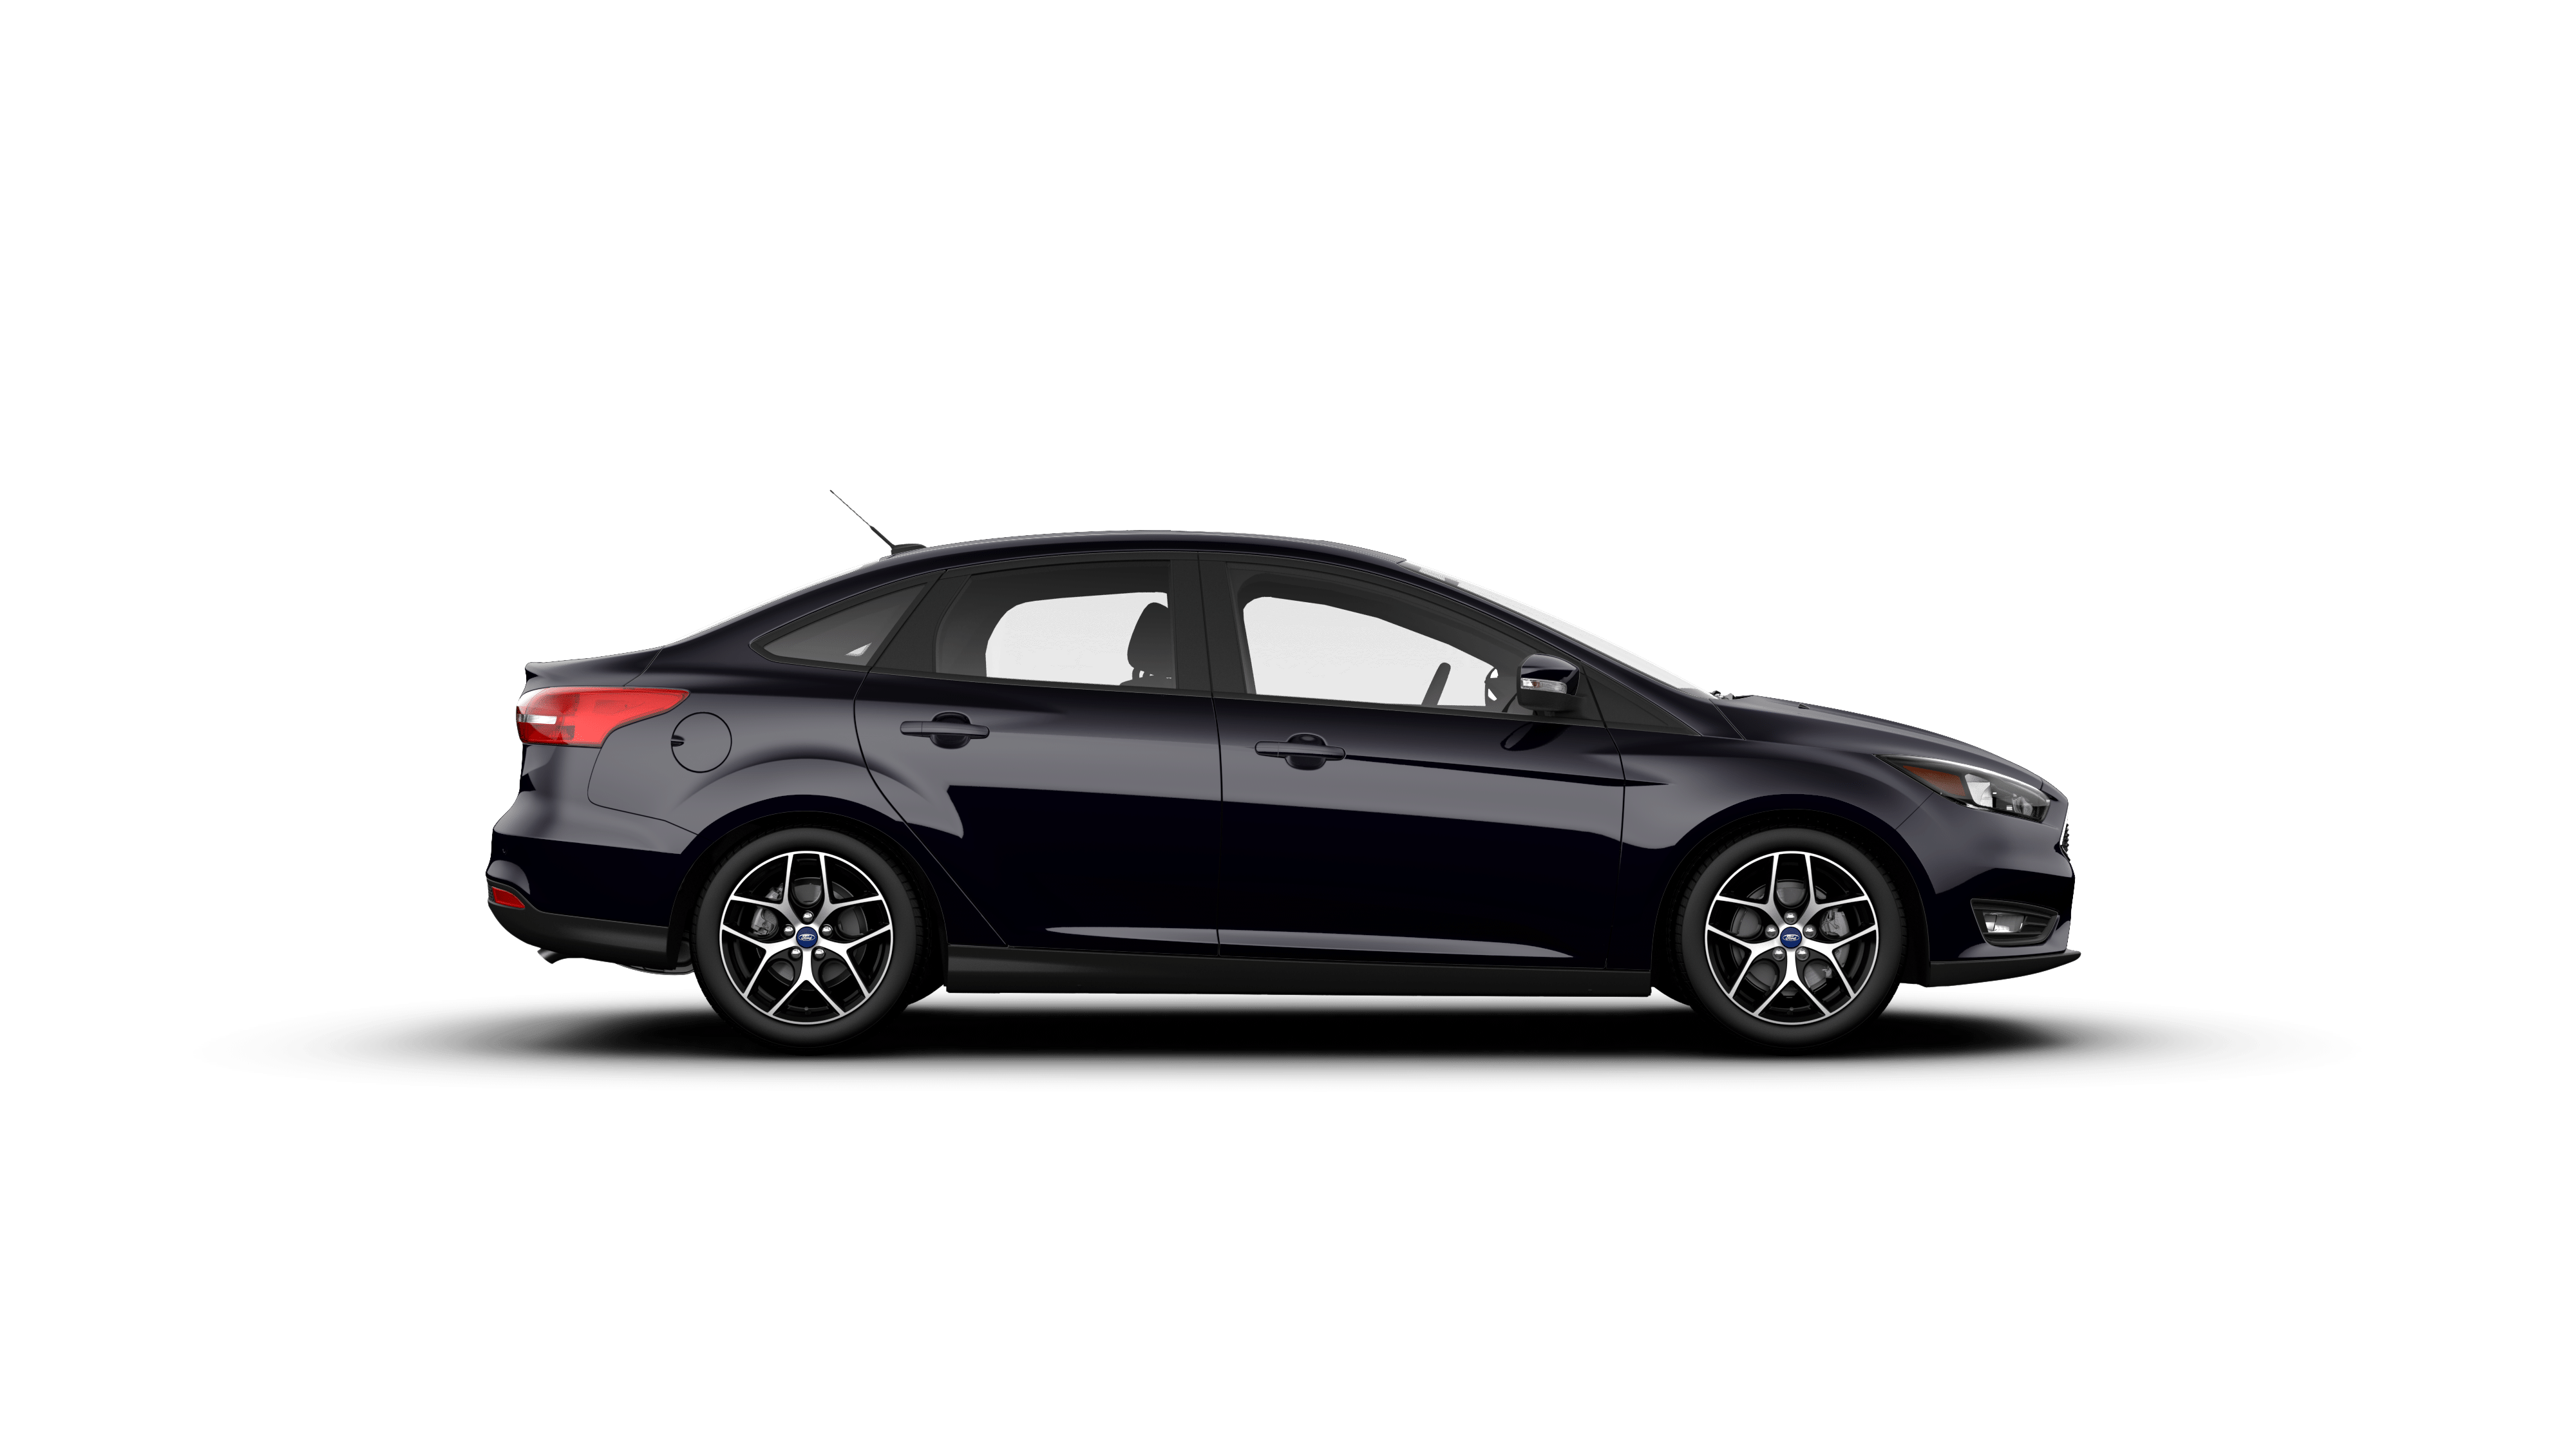 2018 Ford Focus For Sale In South Gate 1fadp3h27jl312925